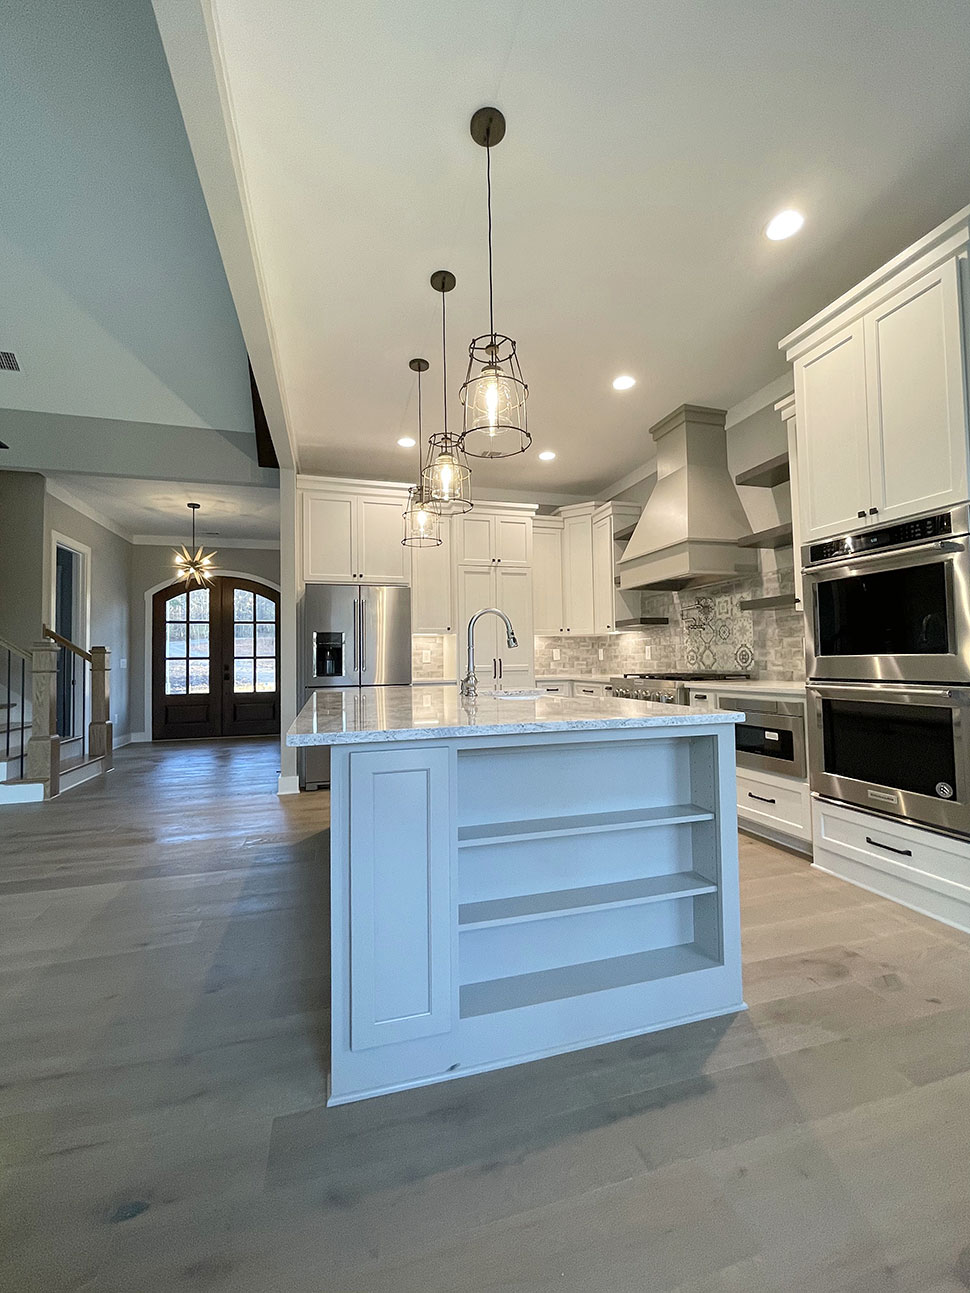 Craftsman, Farmhouse House Plan 52030 with 4 Beds, 4 Baths, 4 Car Garage Picture 35